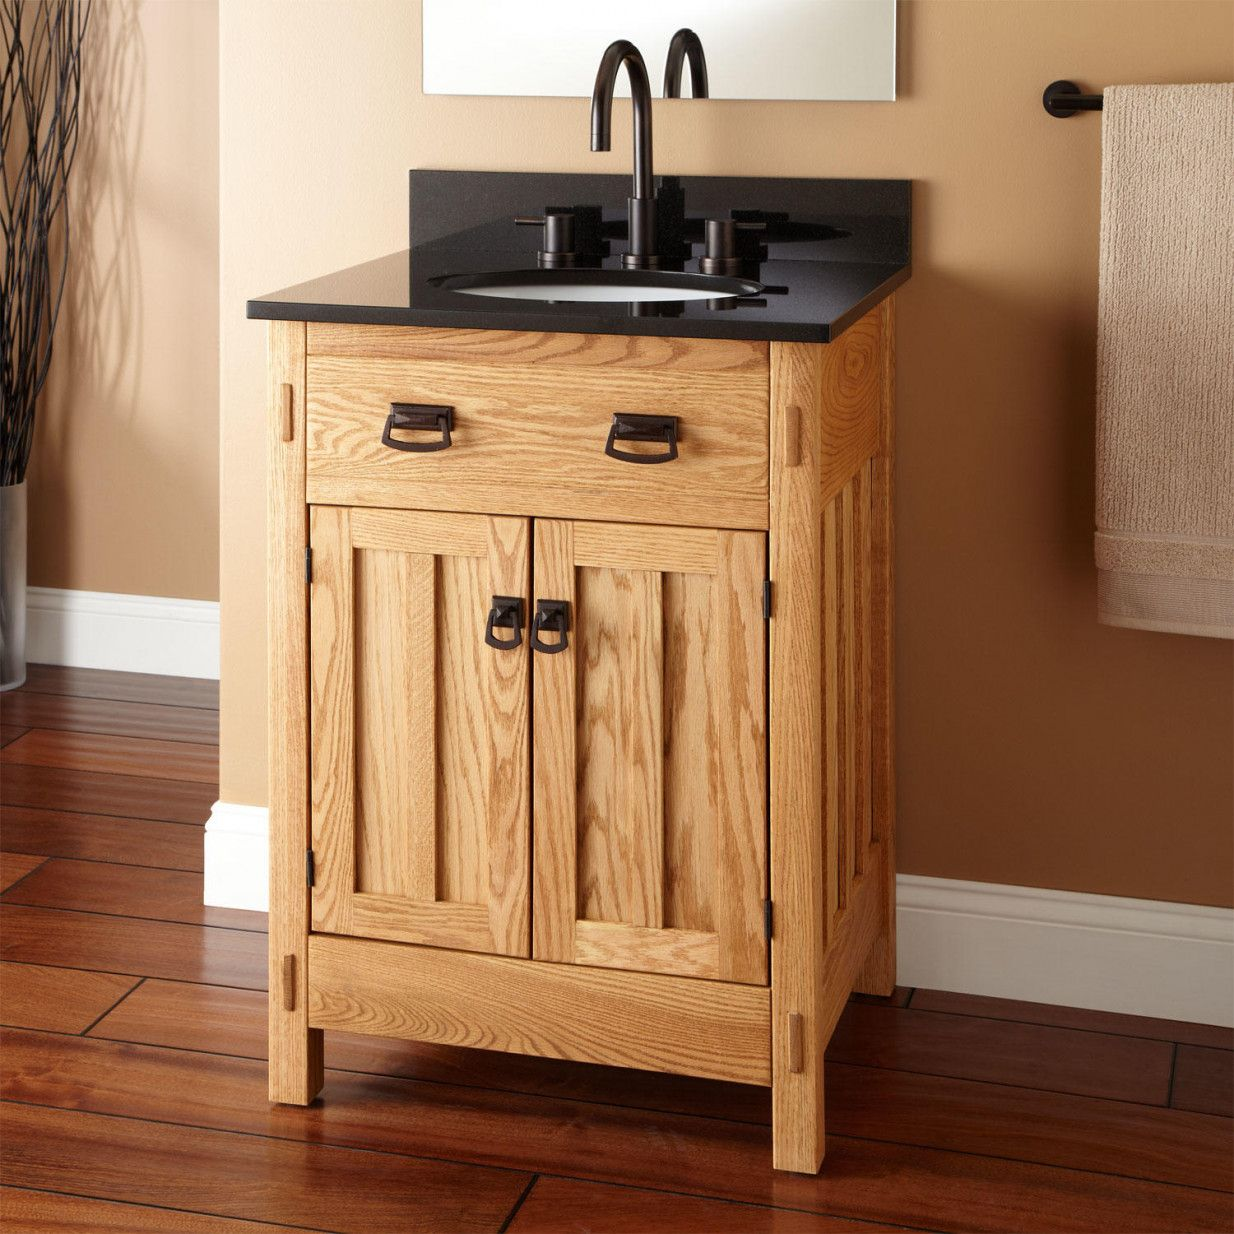 70 Unfinished Wood Bathroom Vanity Cabinets Best Paint For Interior Check More At Http